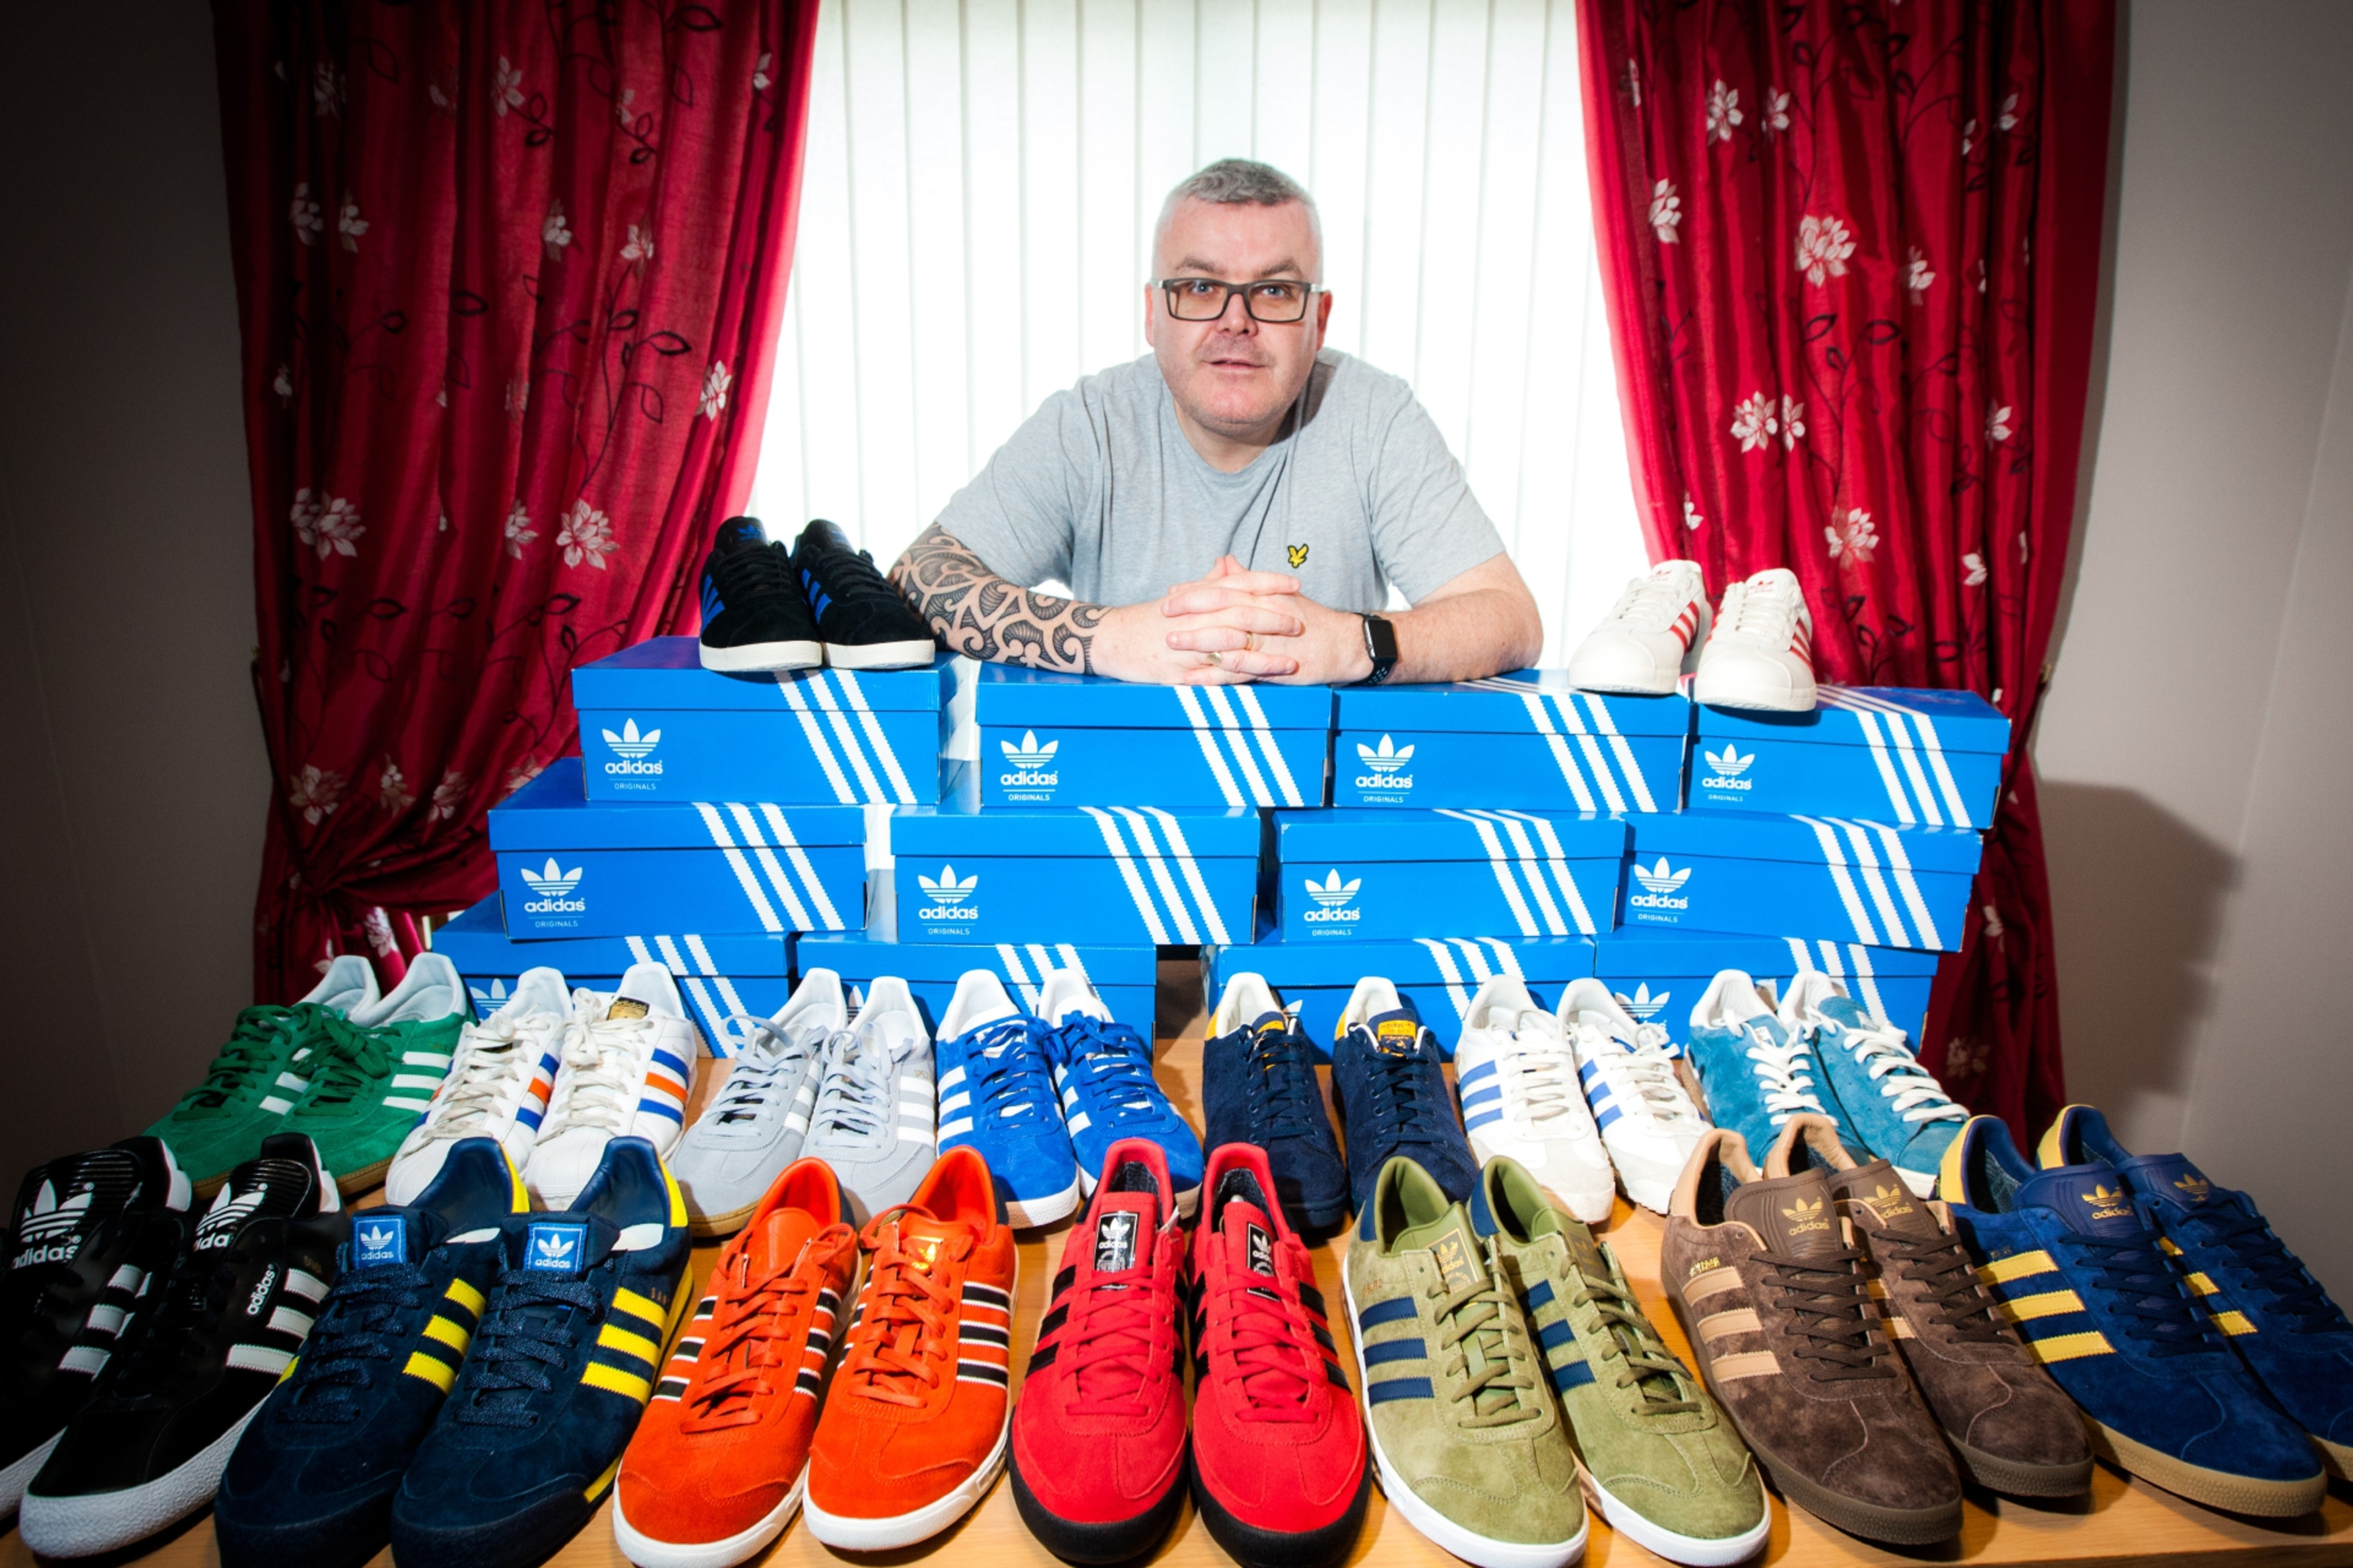 Alan Stewart with a small selection of his Adidas trainer collection.